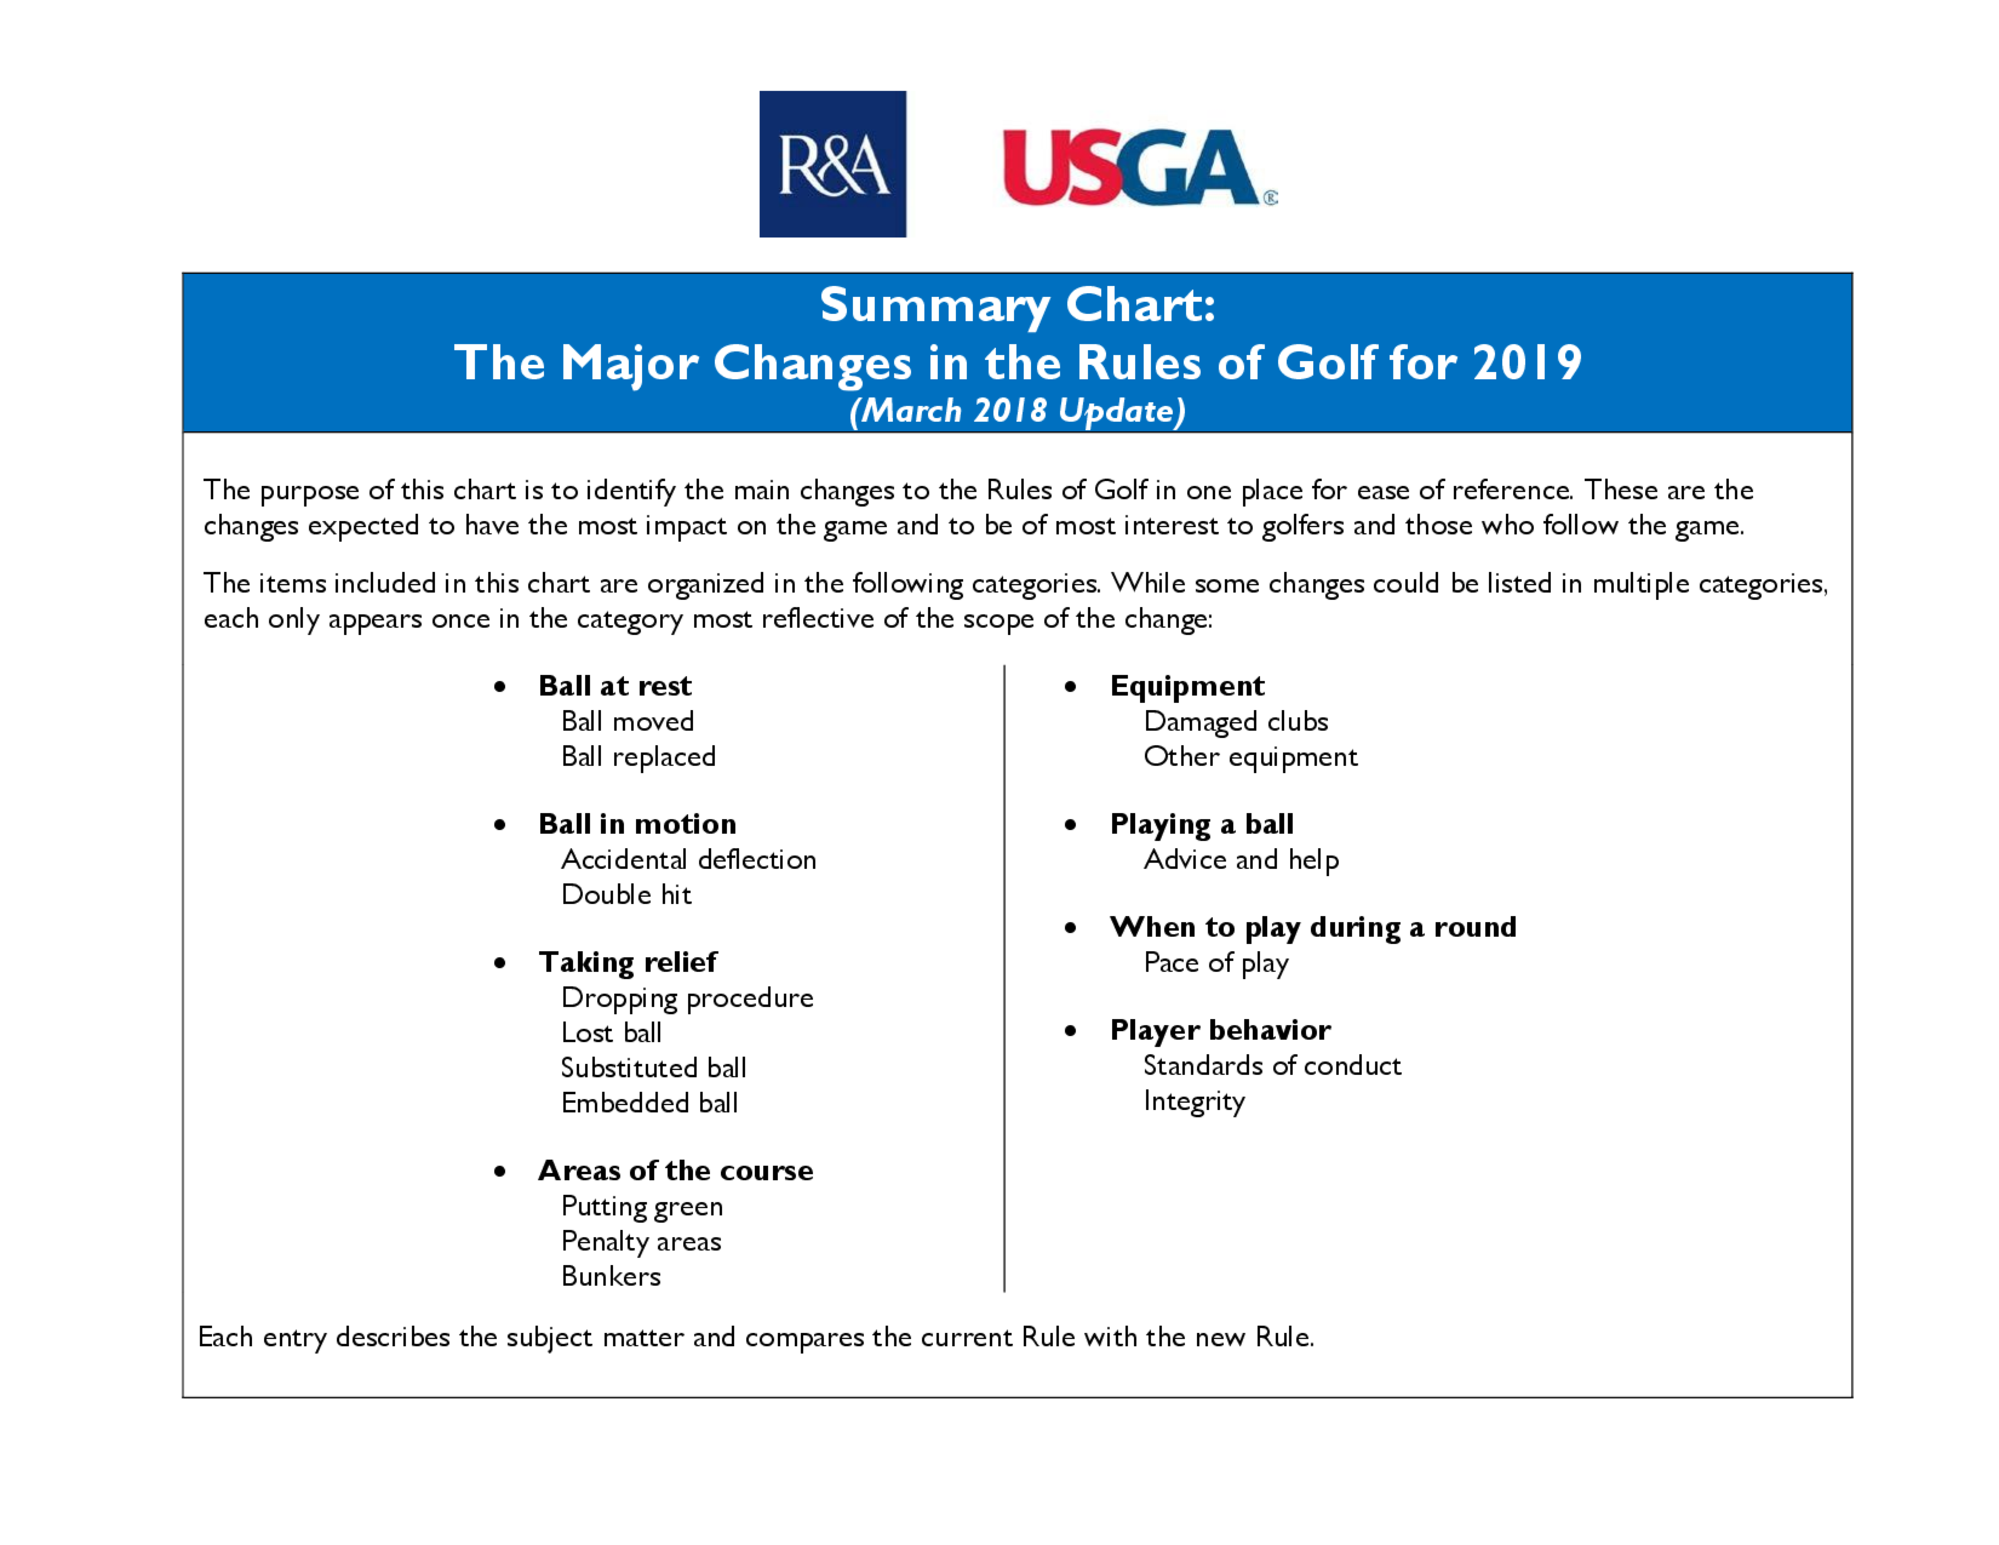 Summary of main changes 2019 rules of golf final  2  1